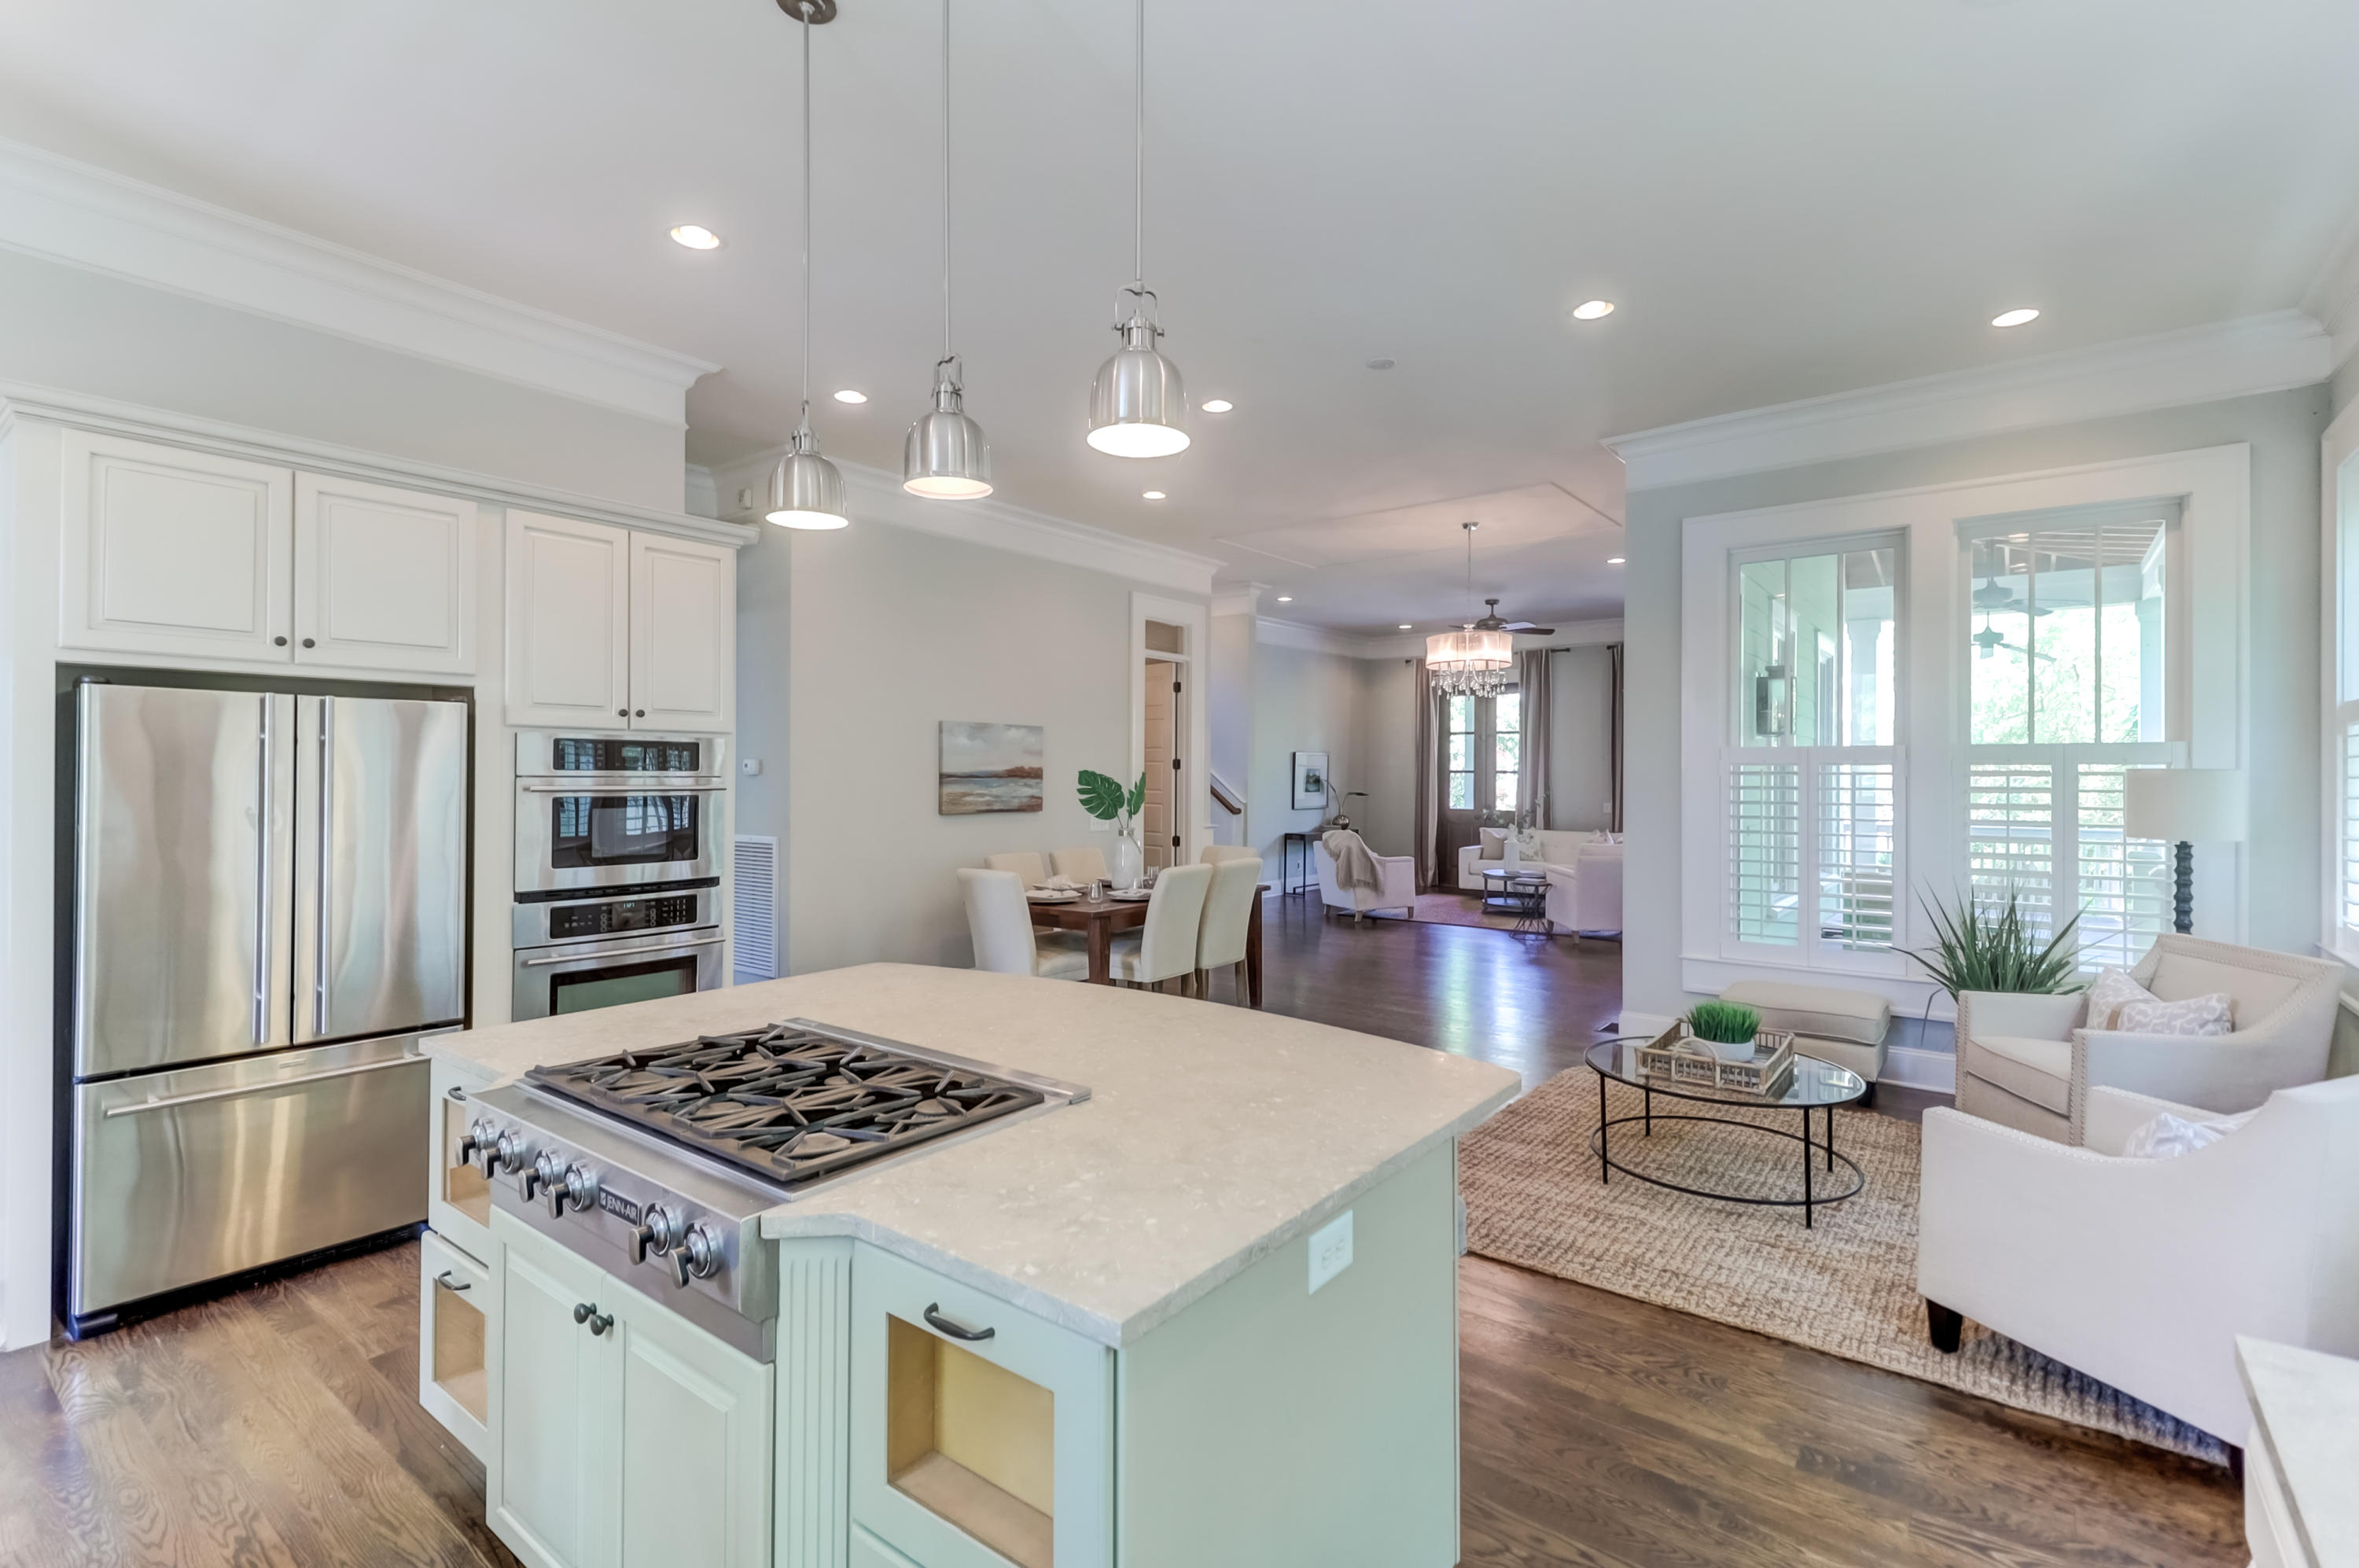 Belle Hall Homes For Sale - 713 Stucco, Mount Pleasant, SC - 9